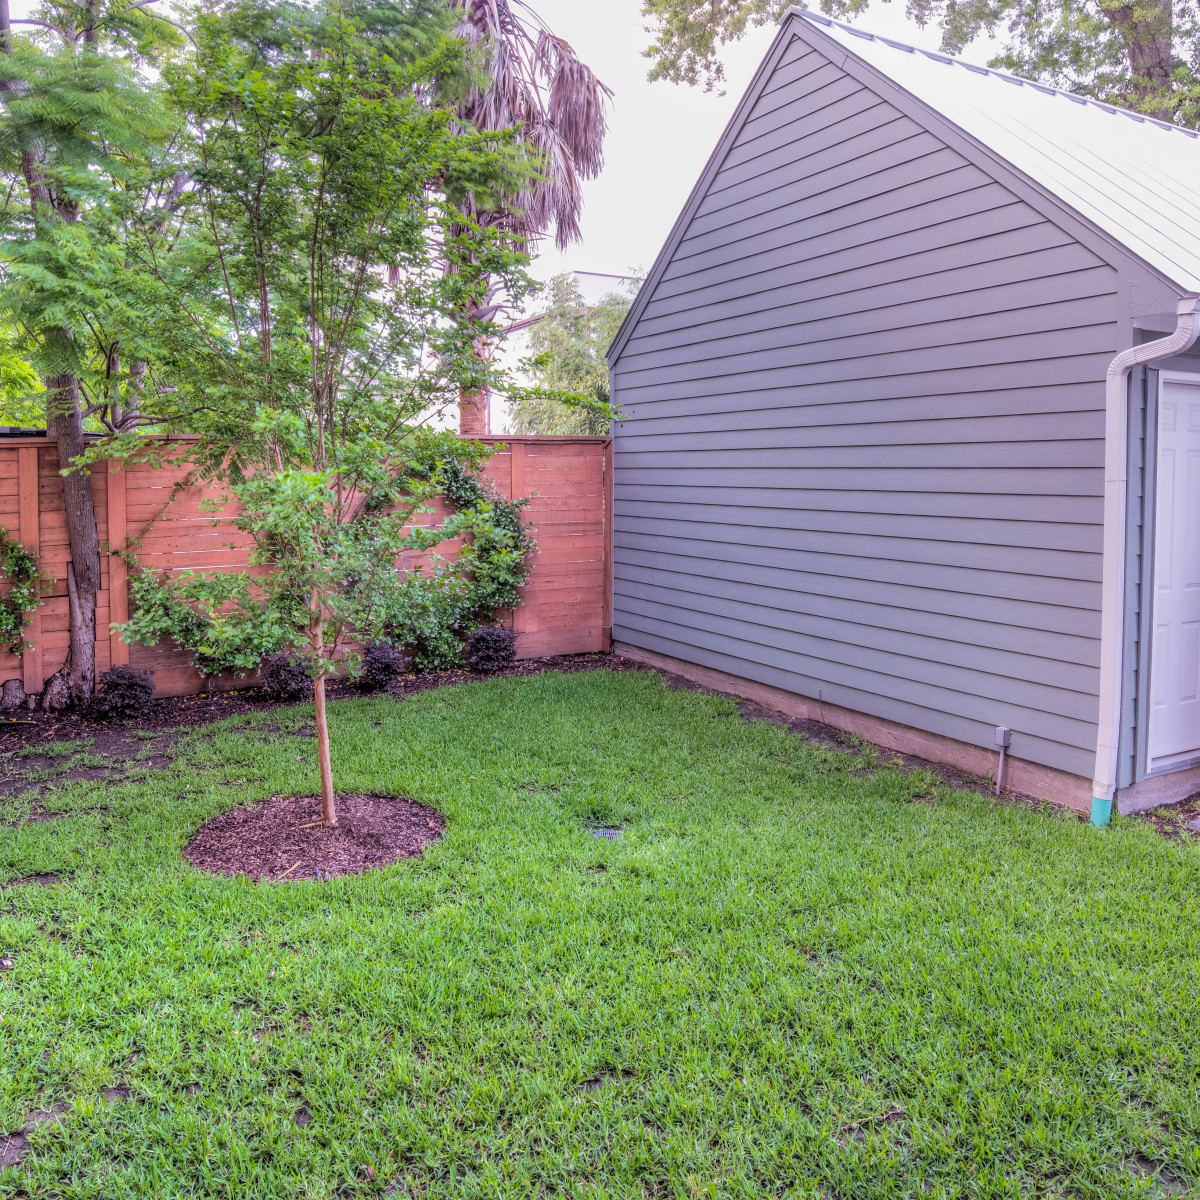 Houston, 1216 Bomar, June 2015, detached garage